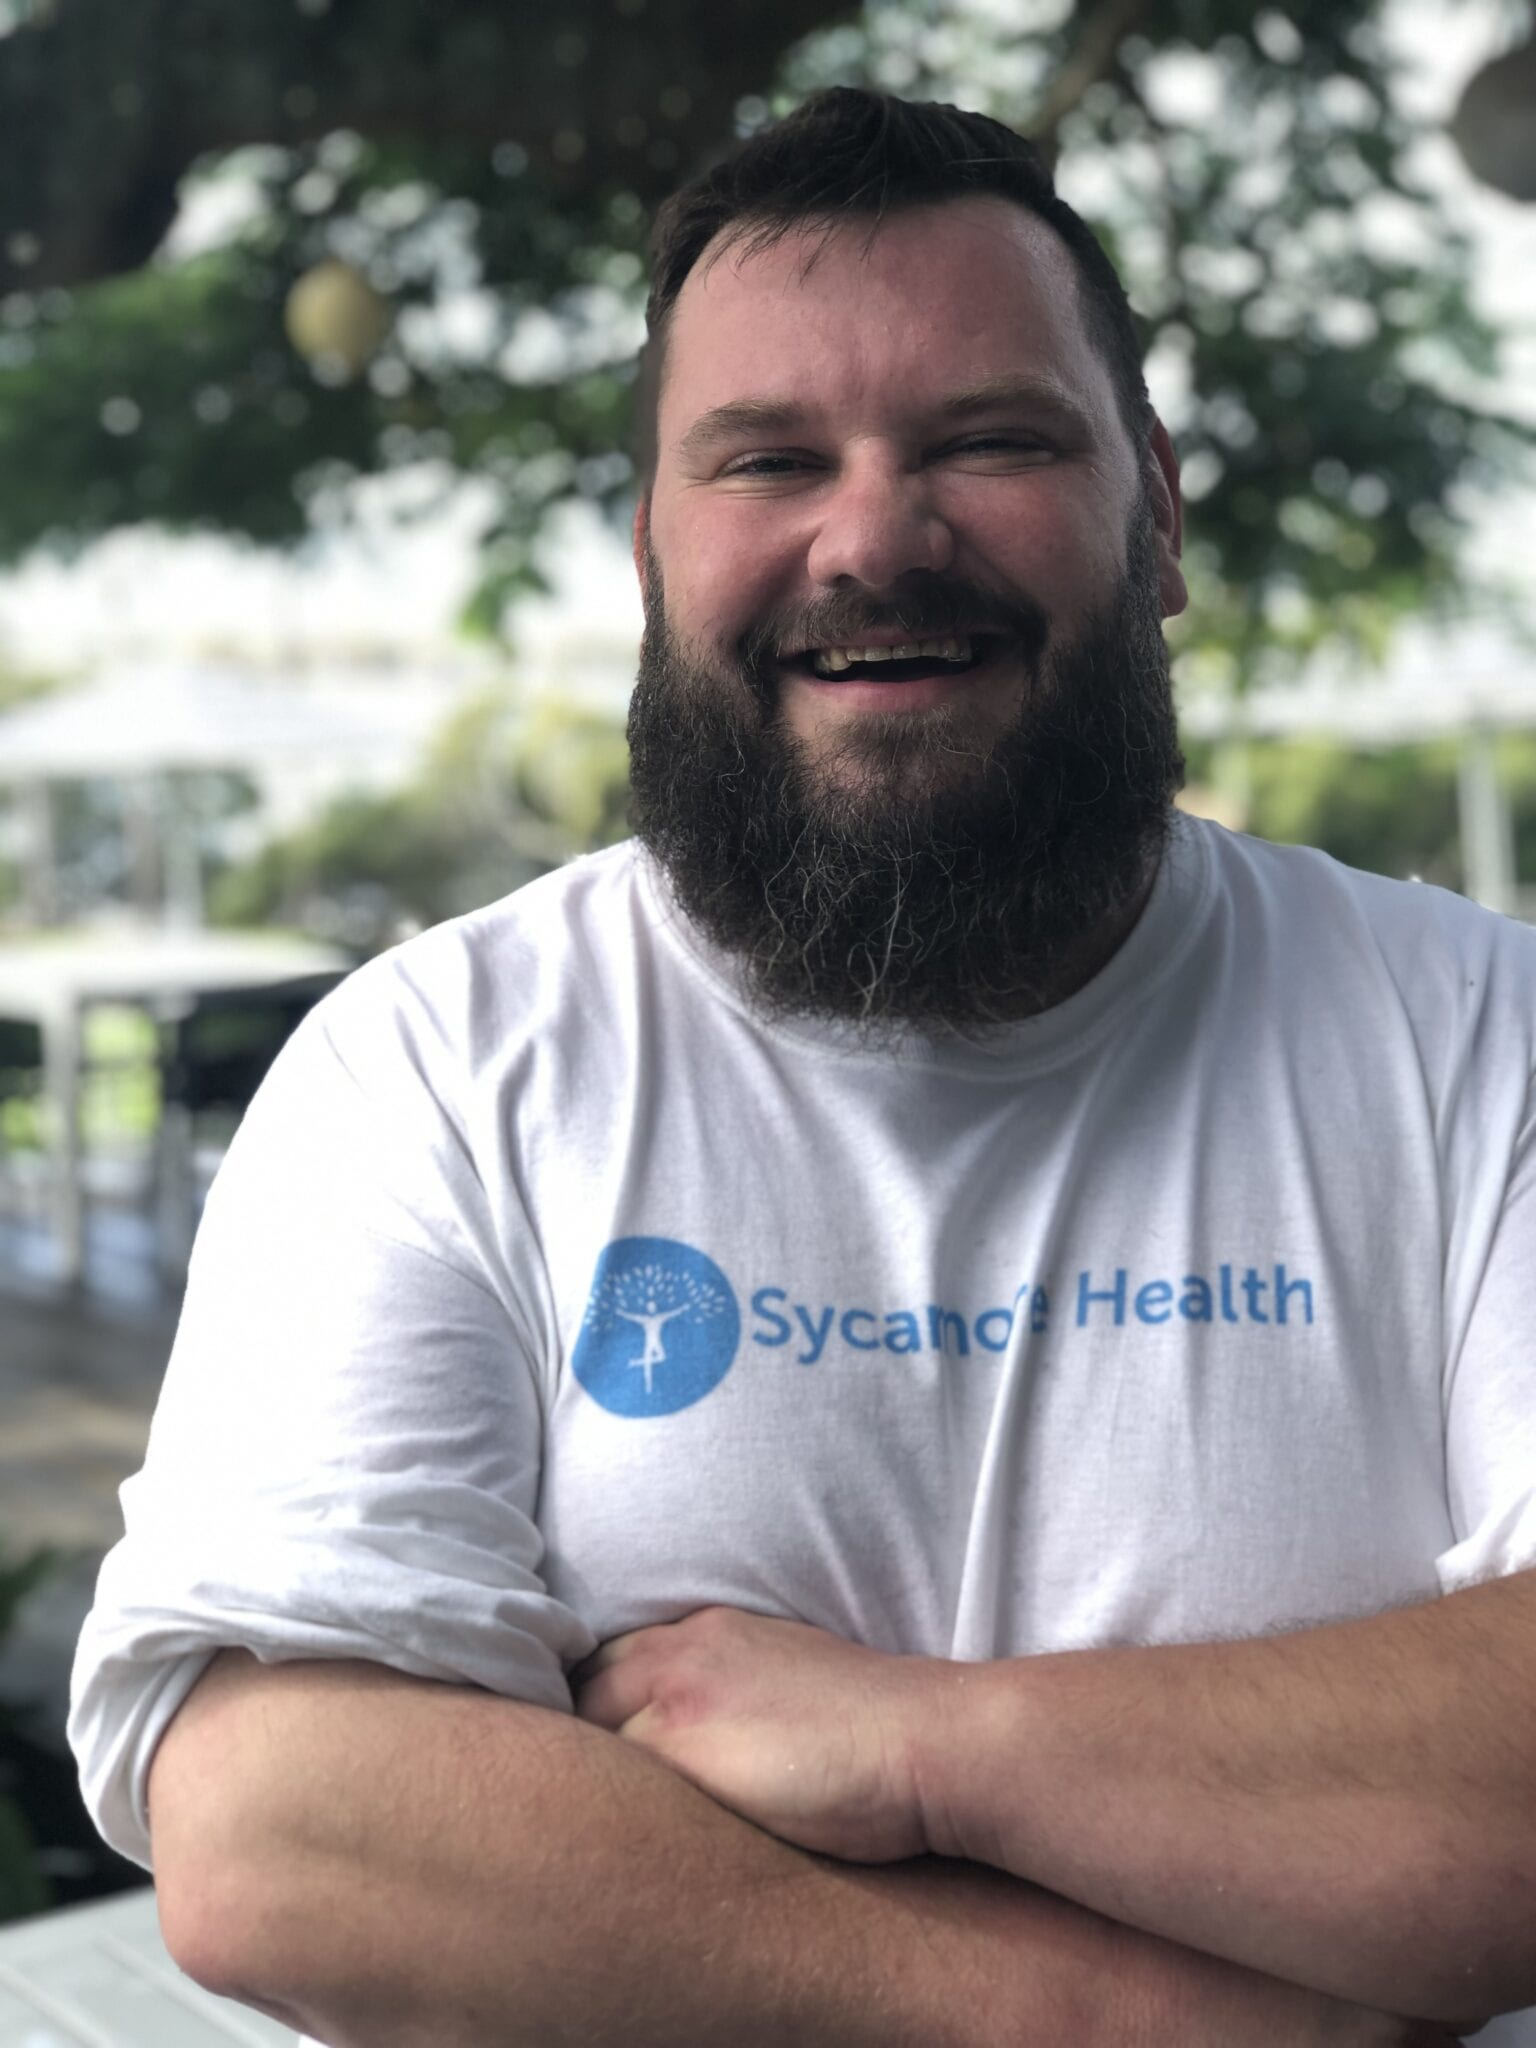 About Us - Sycamore Health